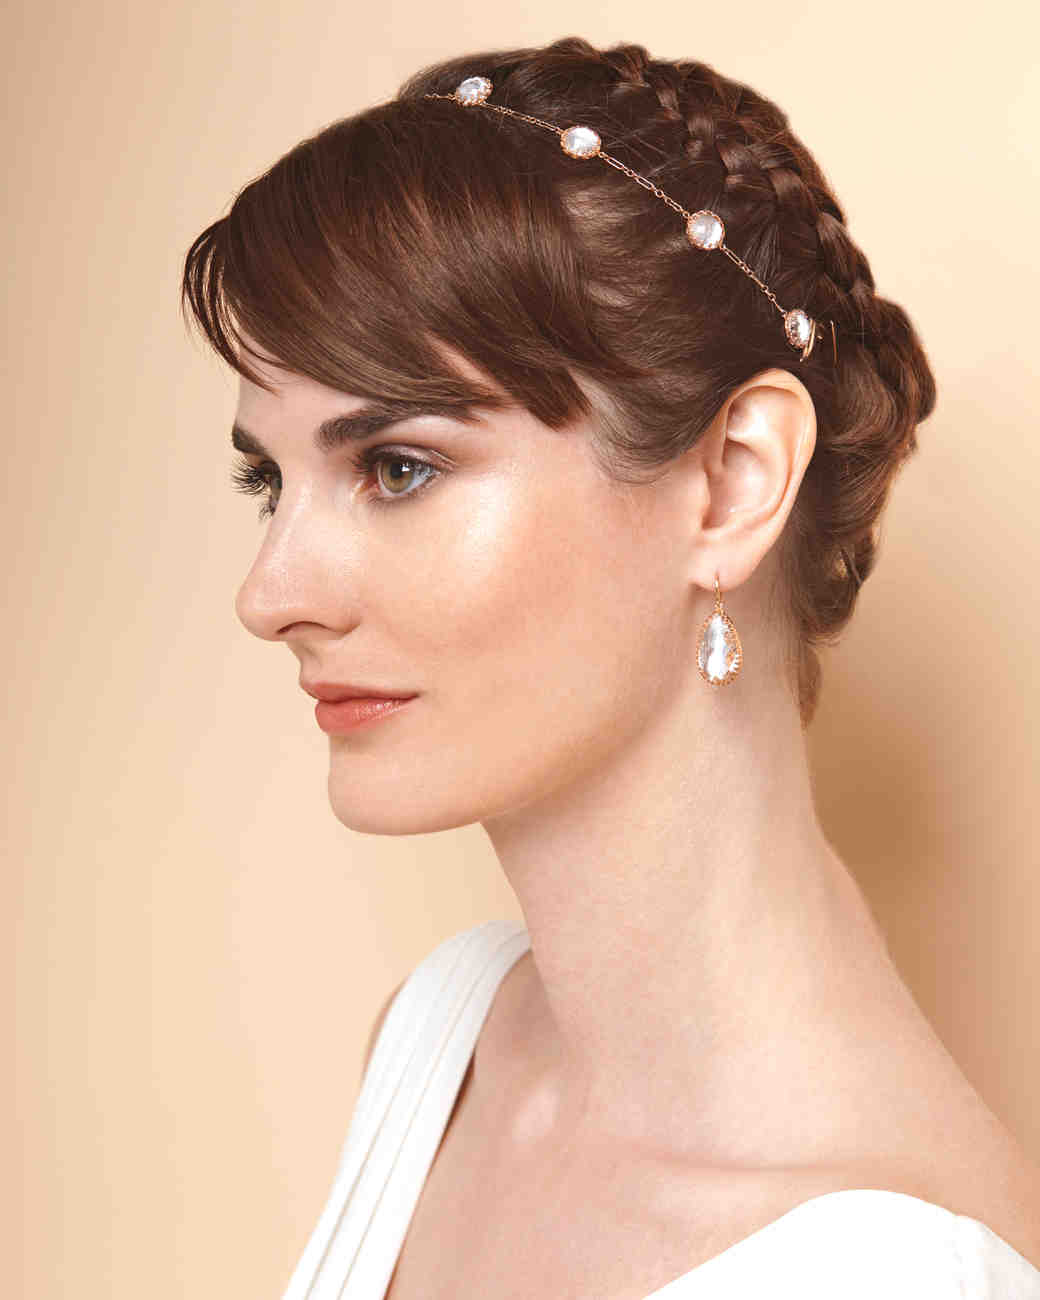 4 ways to wear a short hairstyle on your wedding day | martha